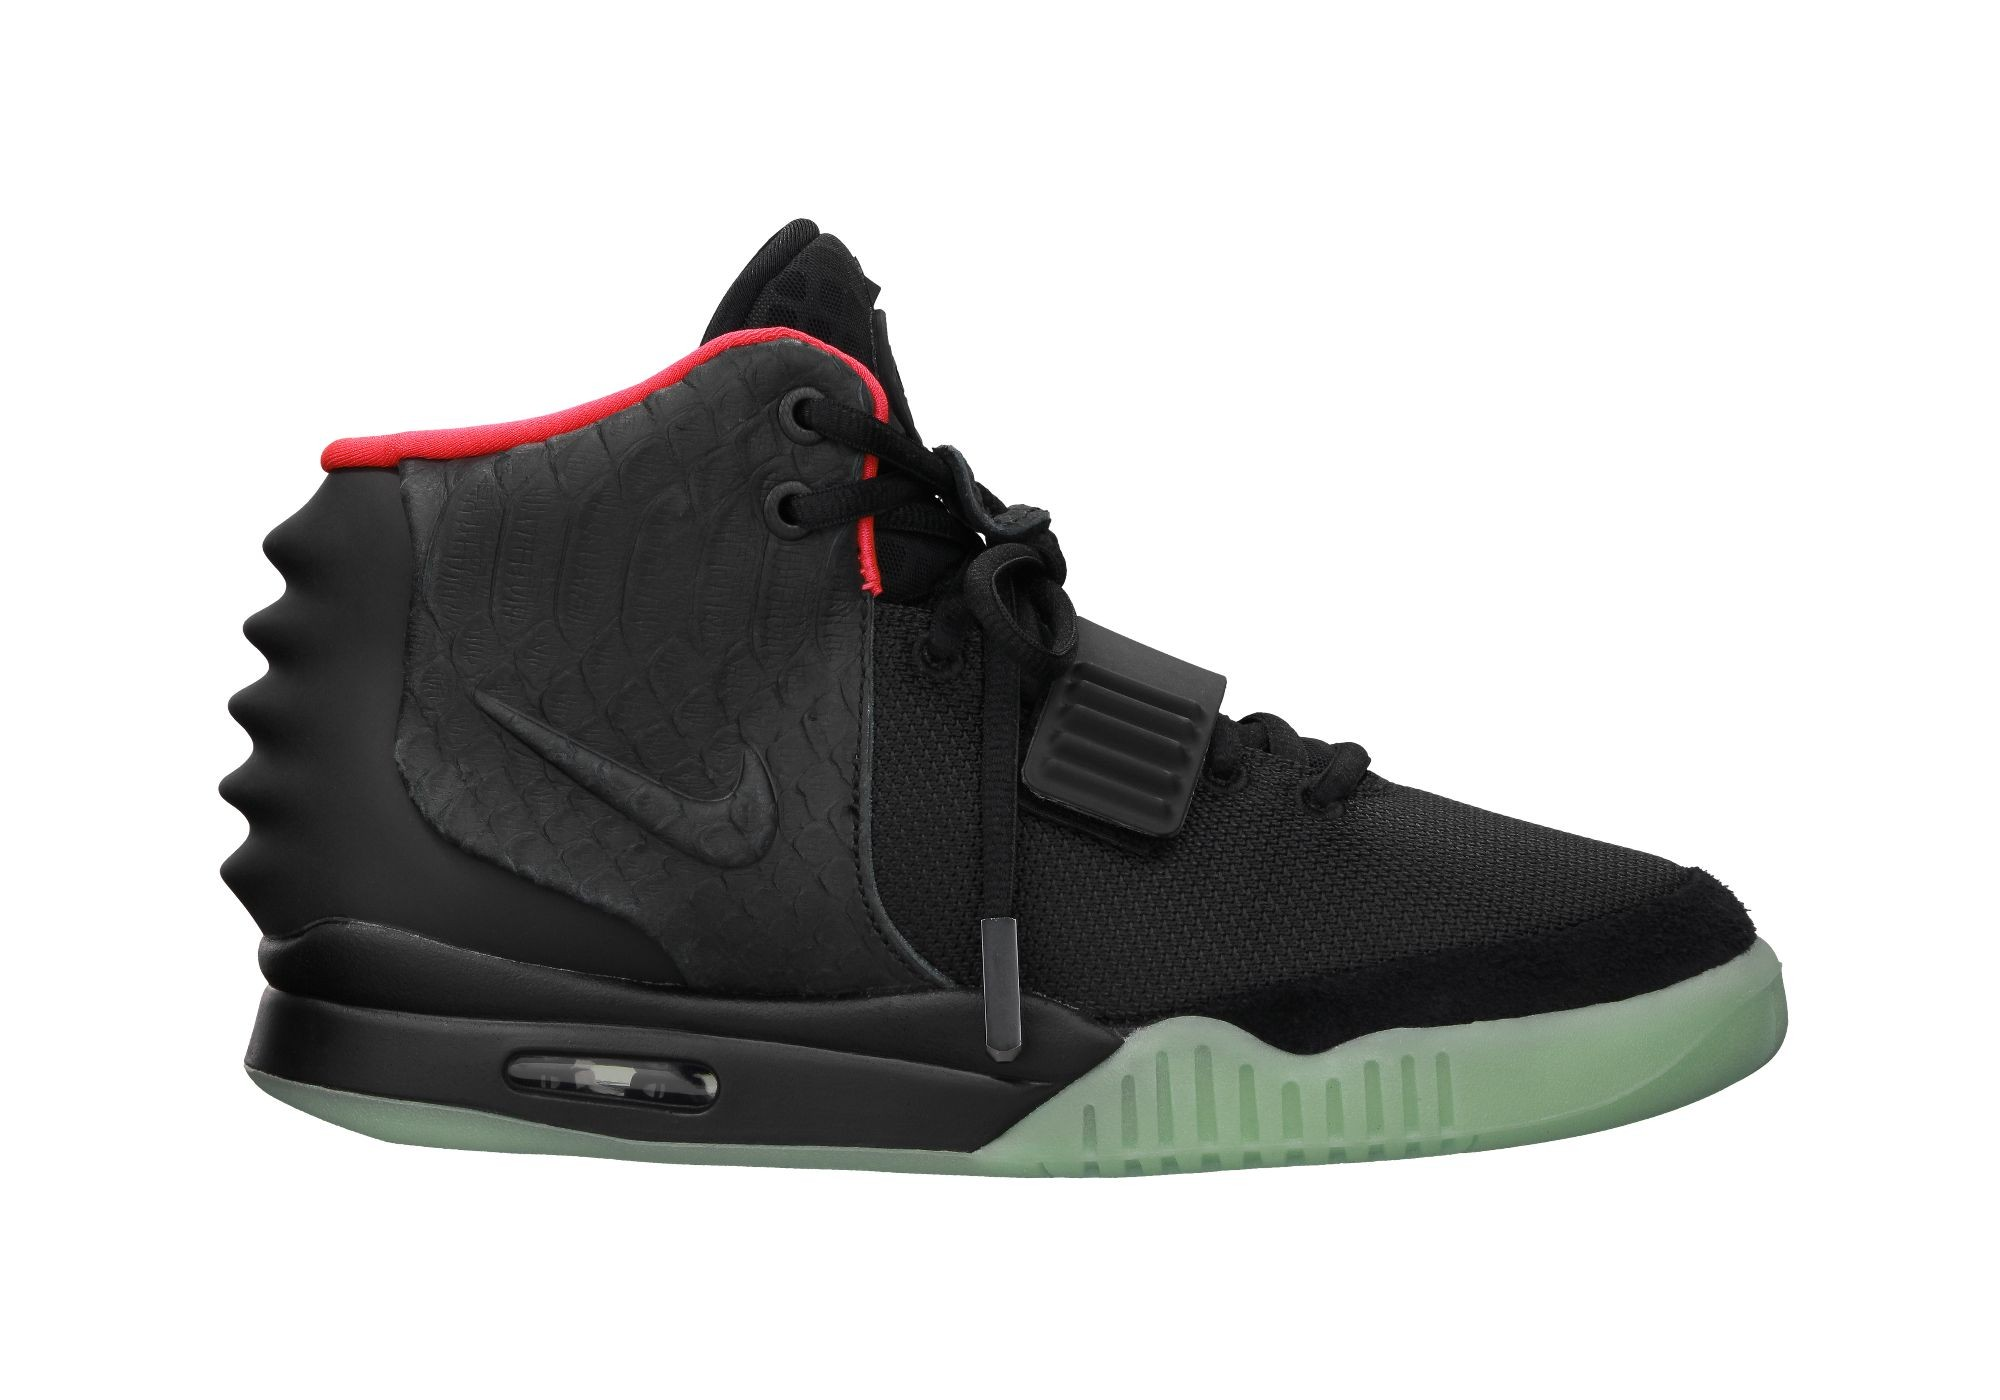 Nike Air Yeezy 2 Black Solar Red x Kanye West Kim Kardashian 508214-006 Sneakers Shoes Glow in the Dark